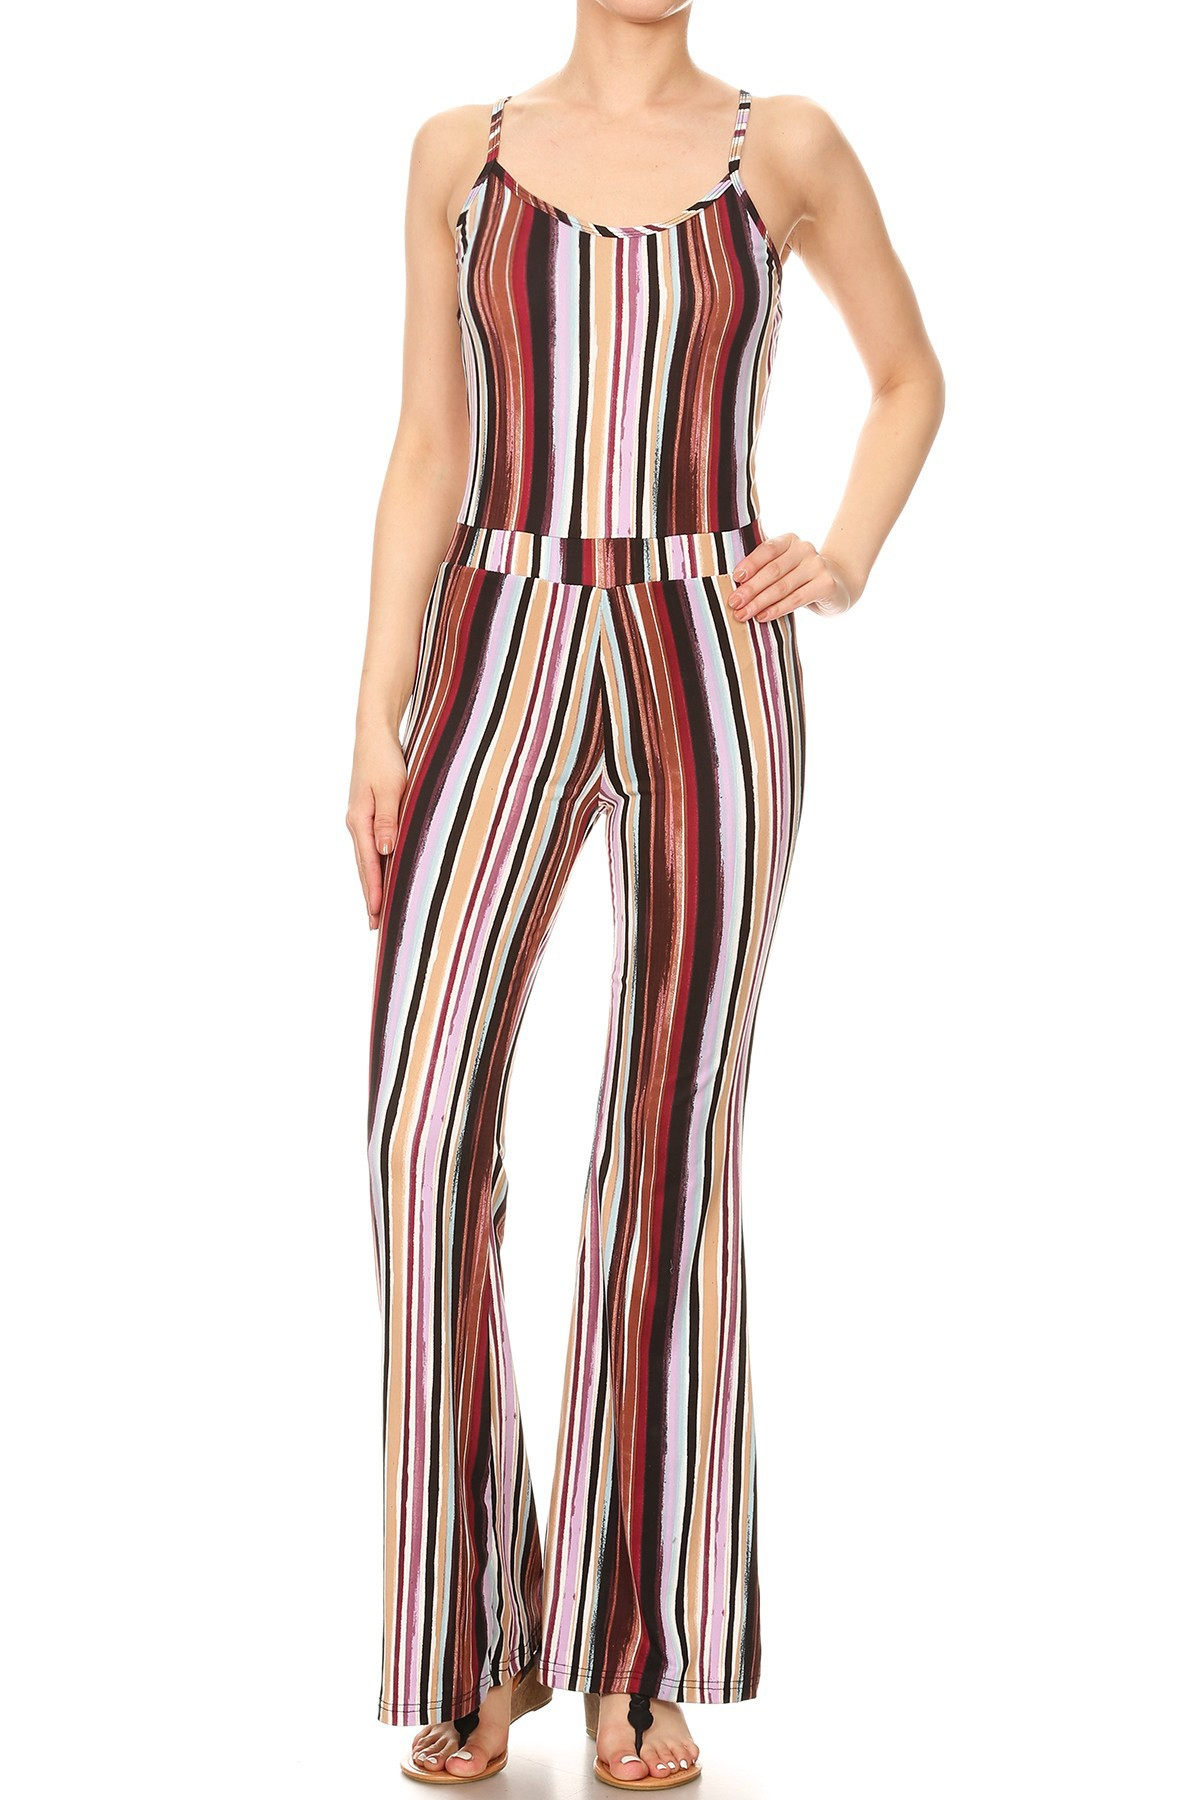 MULTI COLOR STRIPE PRINT RAYON TUBE TOP CROPPED JUMPSUIT#8JPS01-SP20